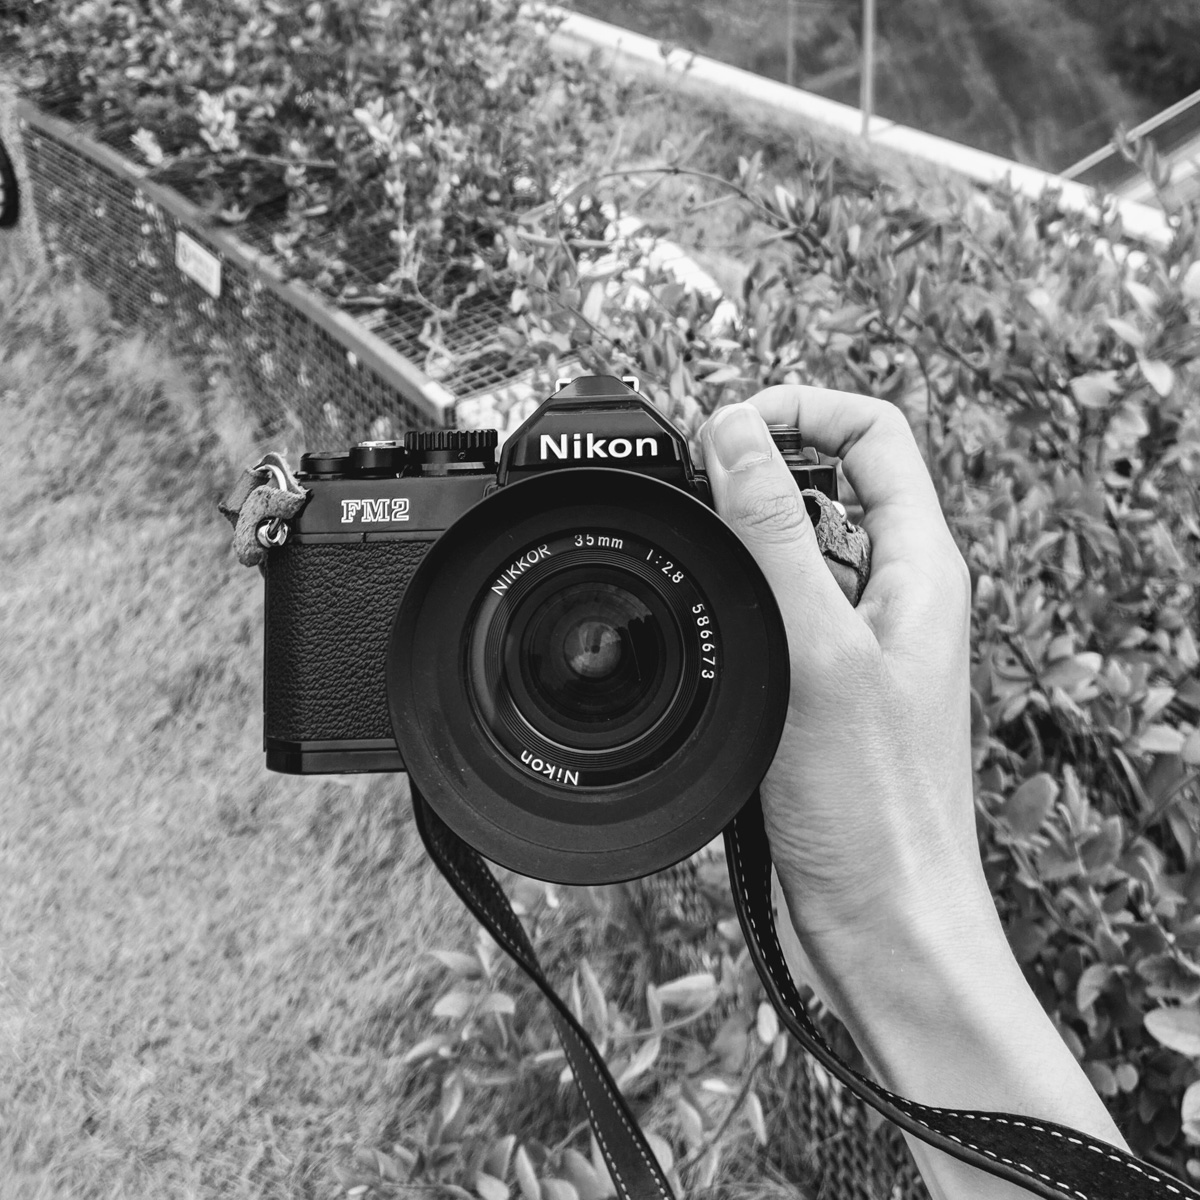 My Nikon FM and Nikkor 35mm f/2 lens - Nick Lumber